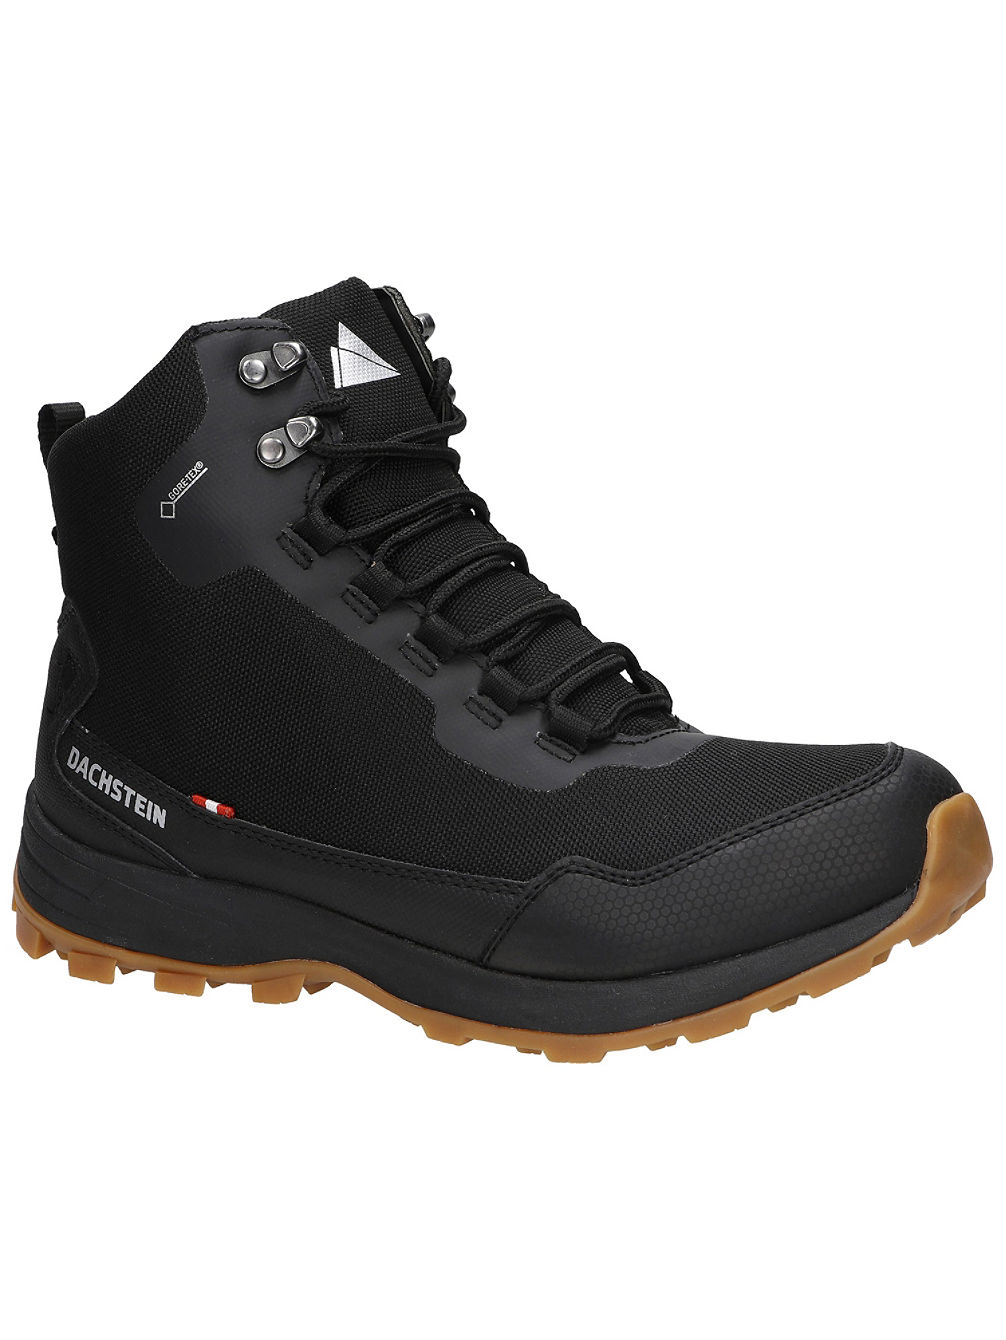 97270753b Buy Dachstein Maverick Gore-Tex Shoes online at Blue Tomato